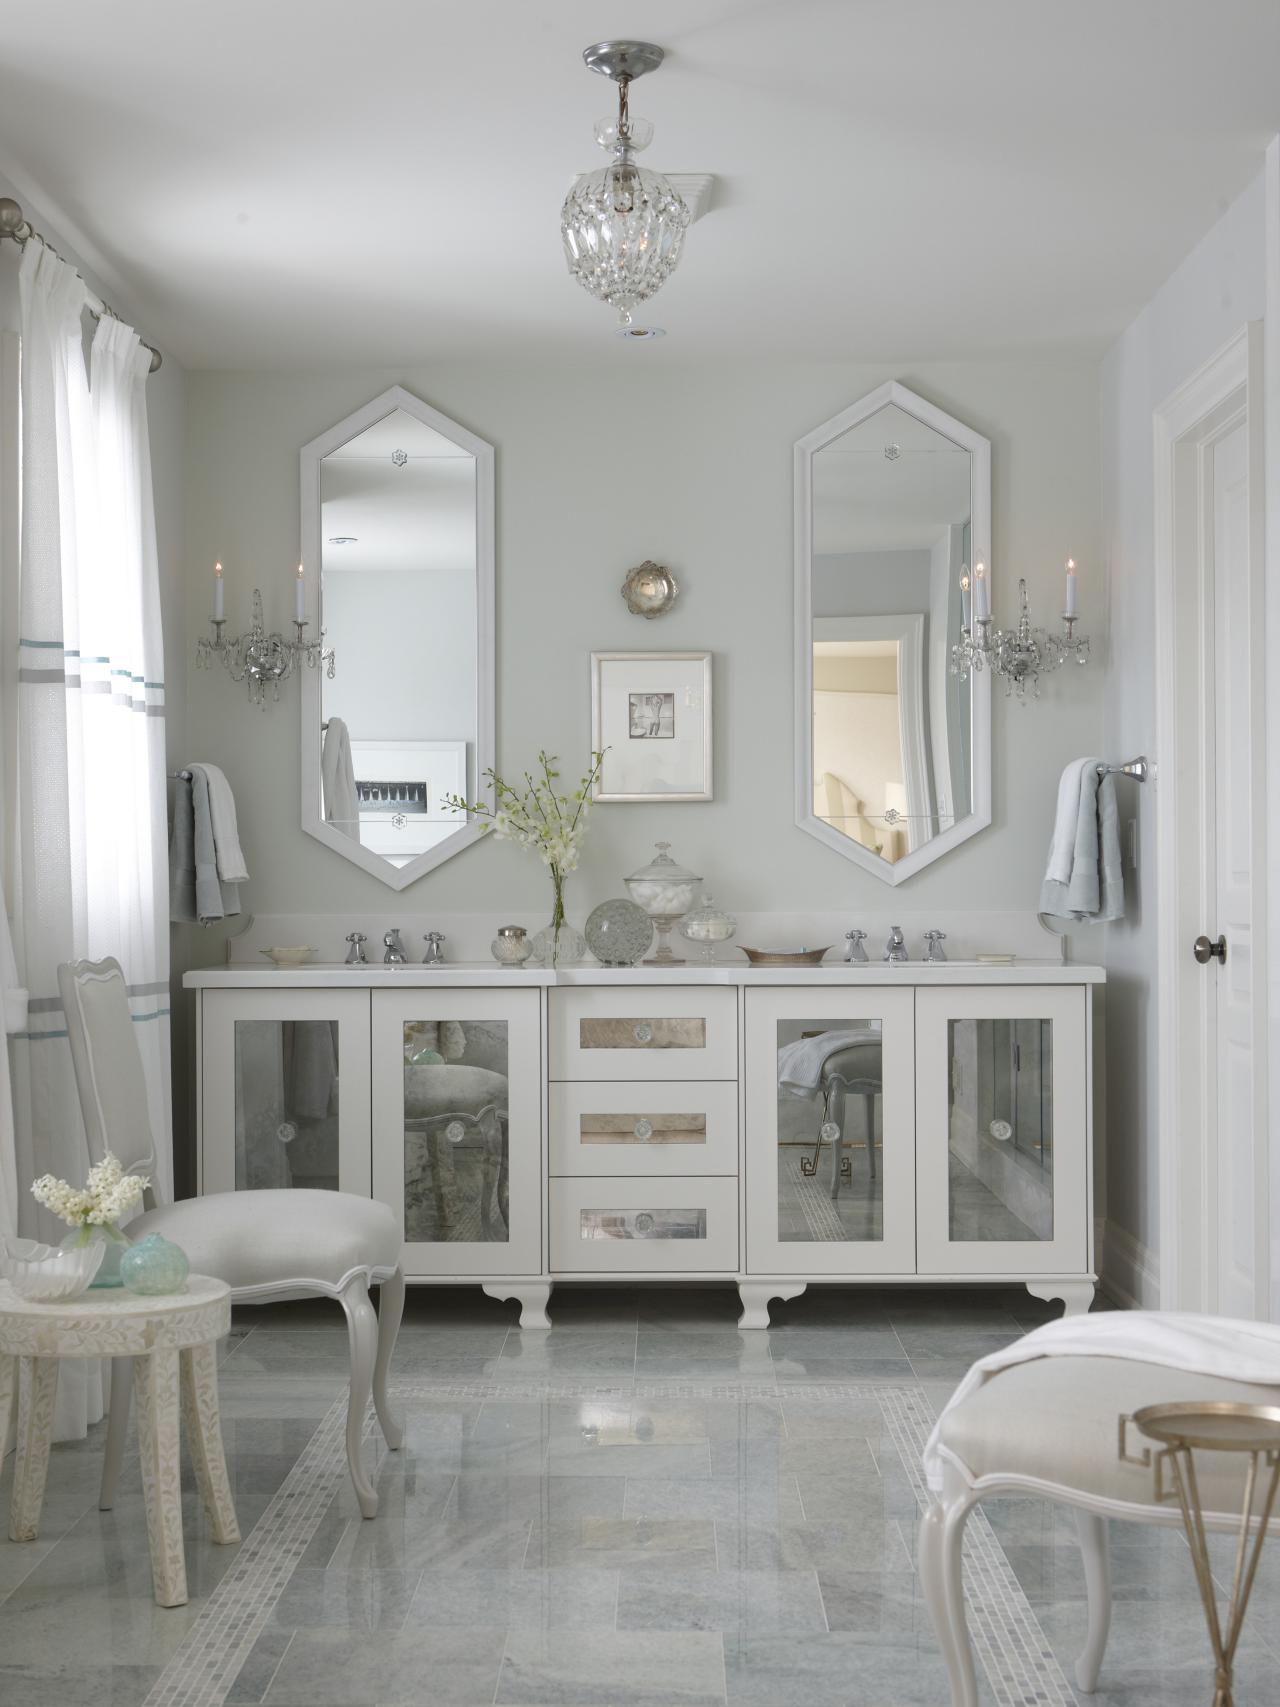 Amazing mirrored vanity for home furniture and vanity mirror with lights